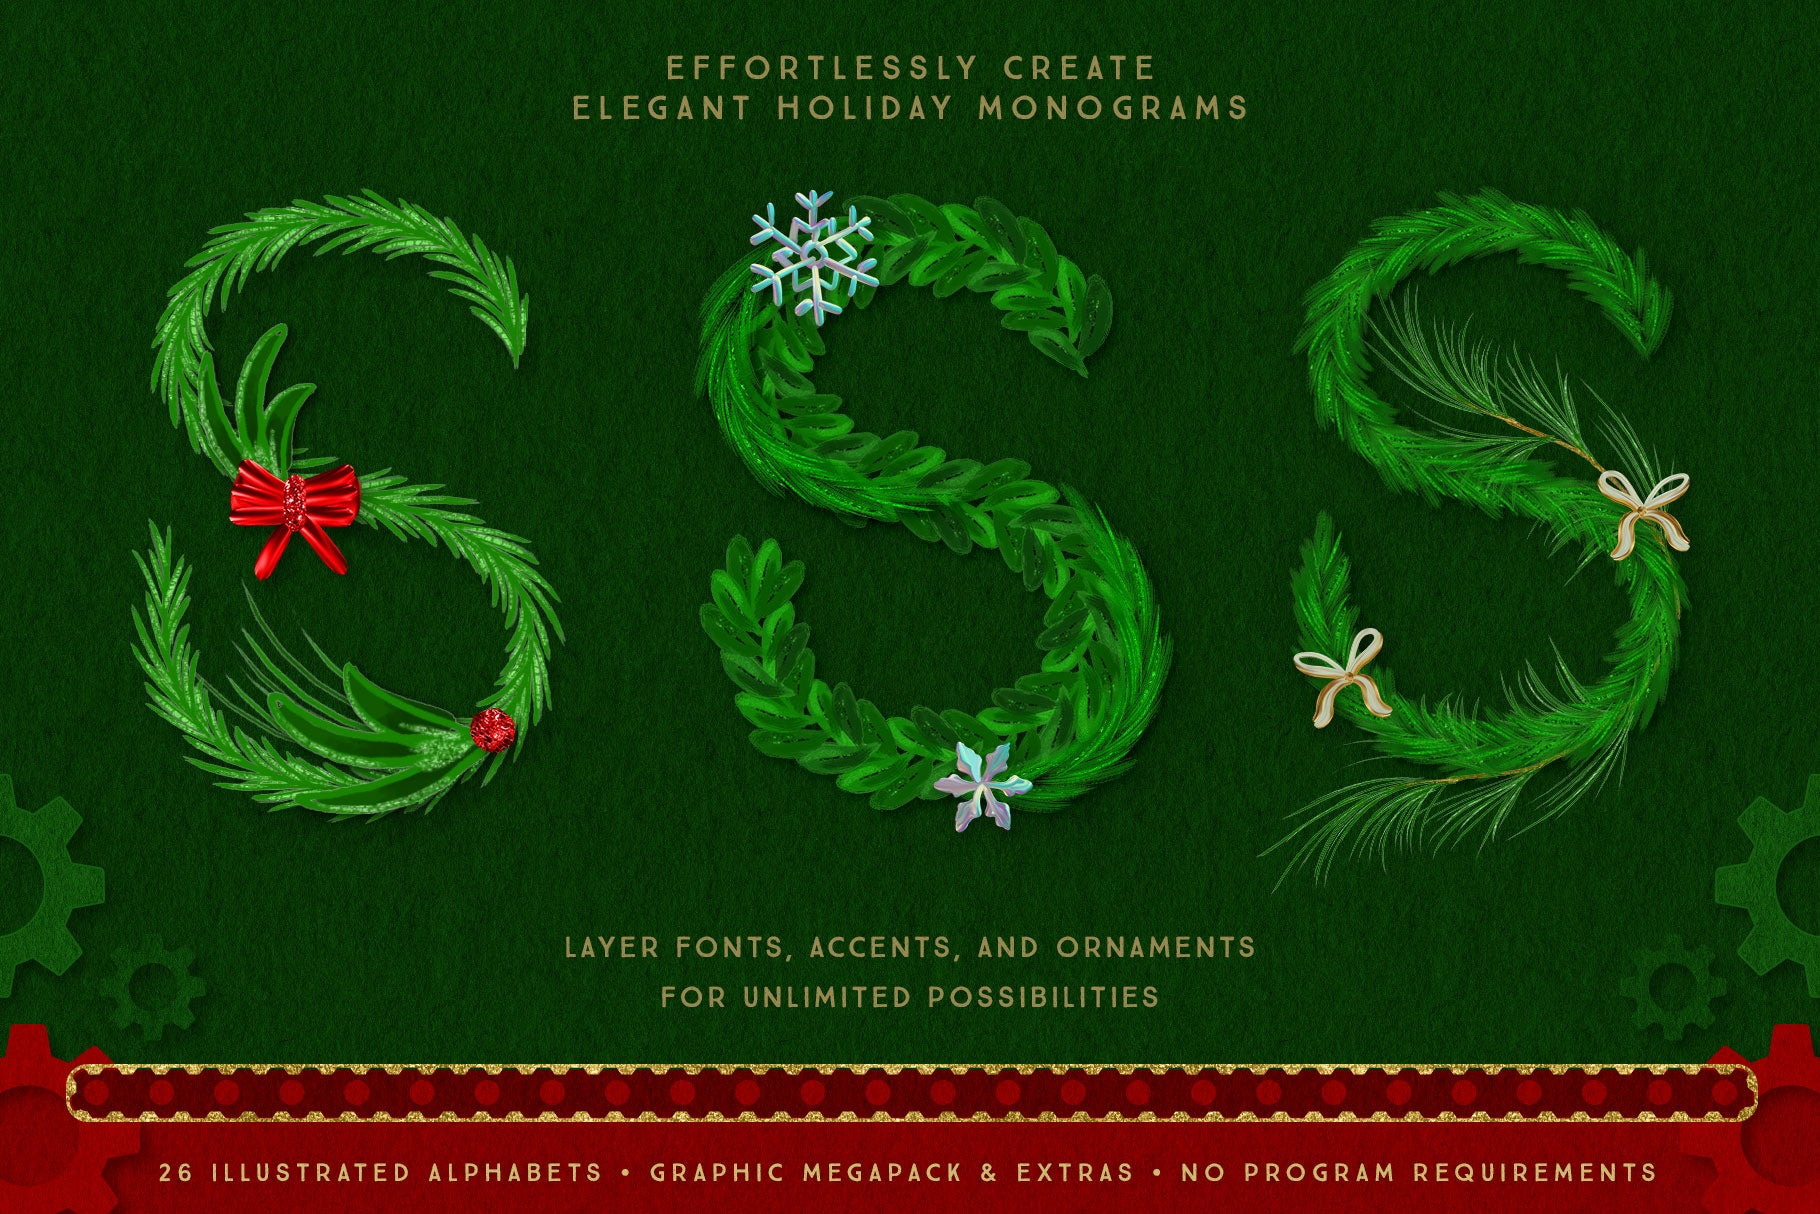 Luxe Christmas & Holiday Greenery Alphabets: monogram options